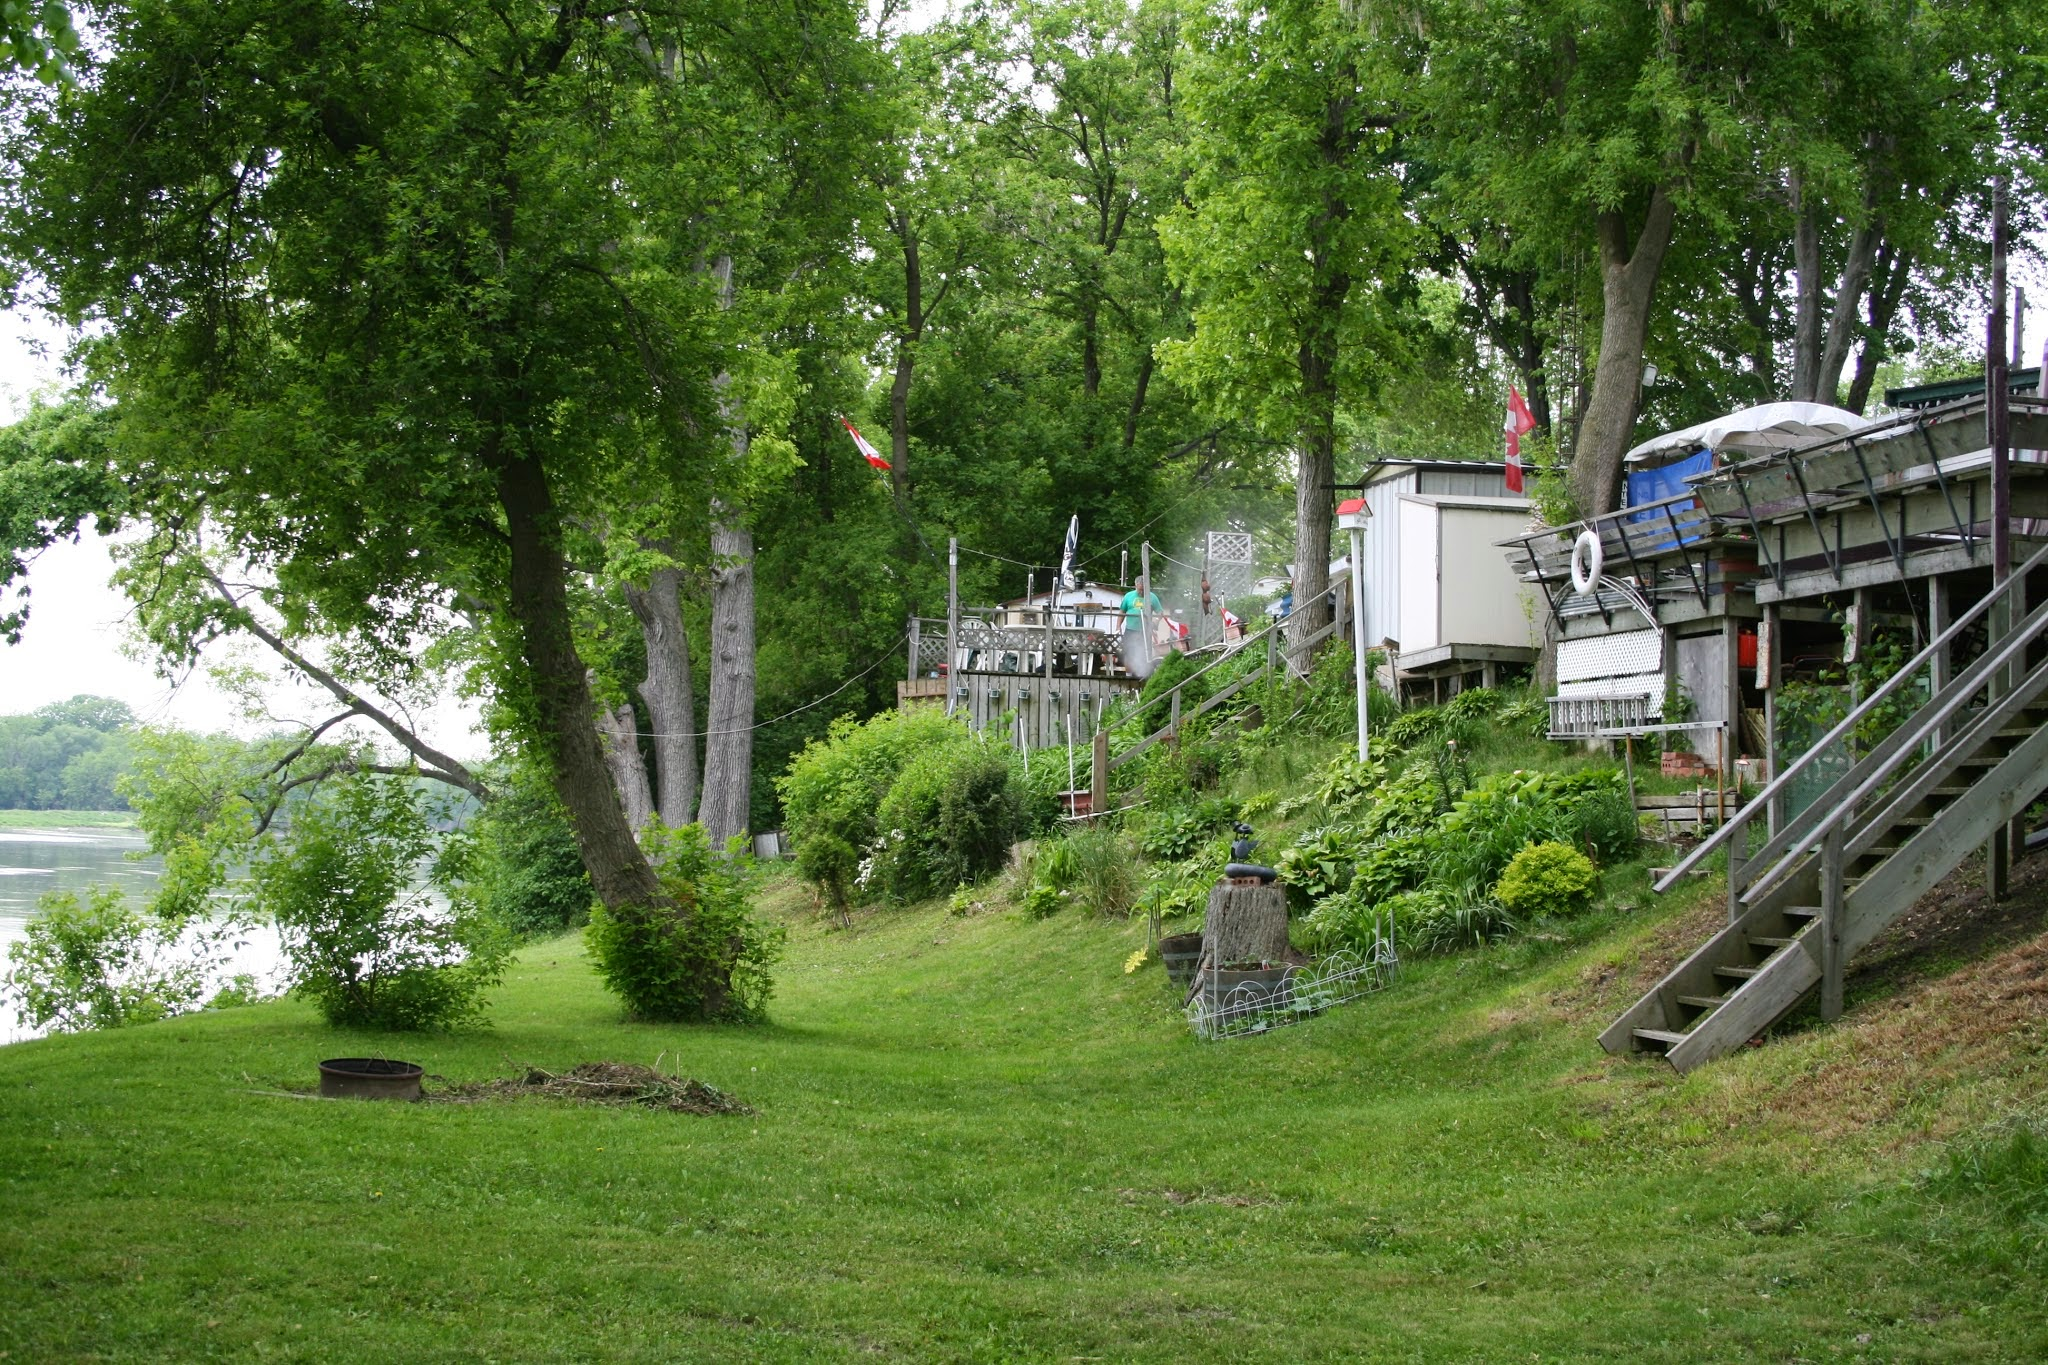 Grand Oaks RV Resort & Campground - Cayuga, ON N0A 1E0 - (905)772-3713 | ShowMeLocal.com